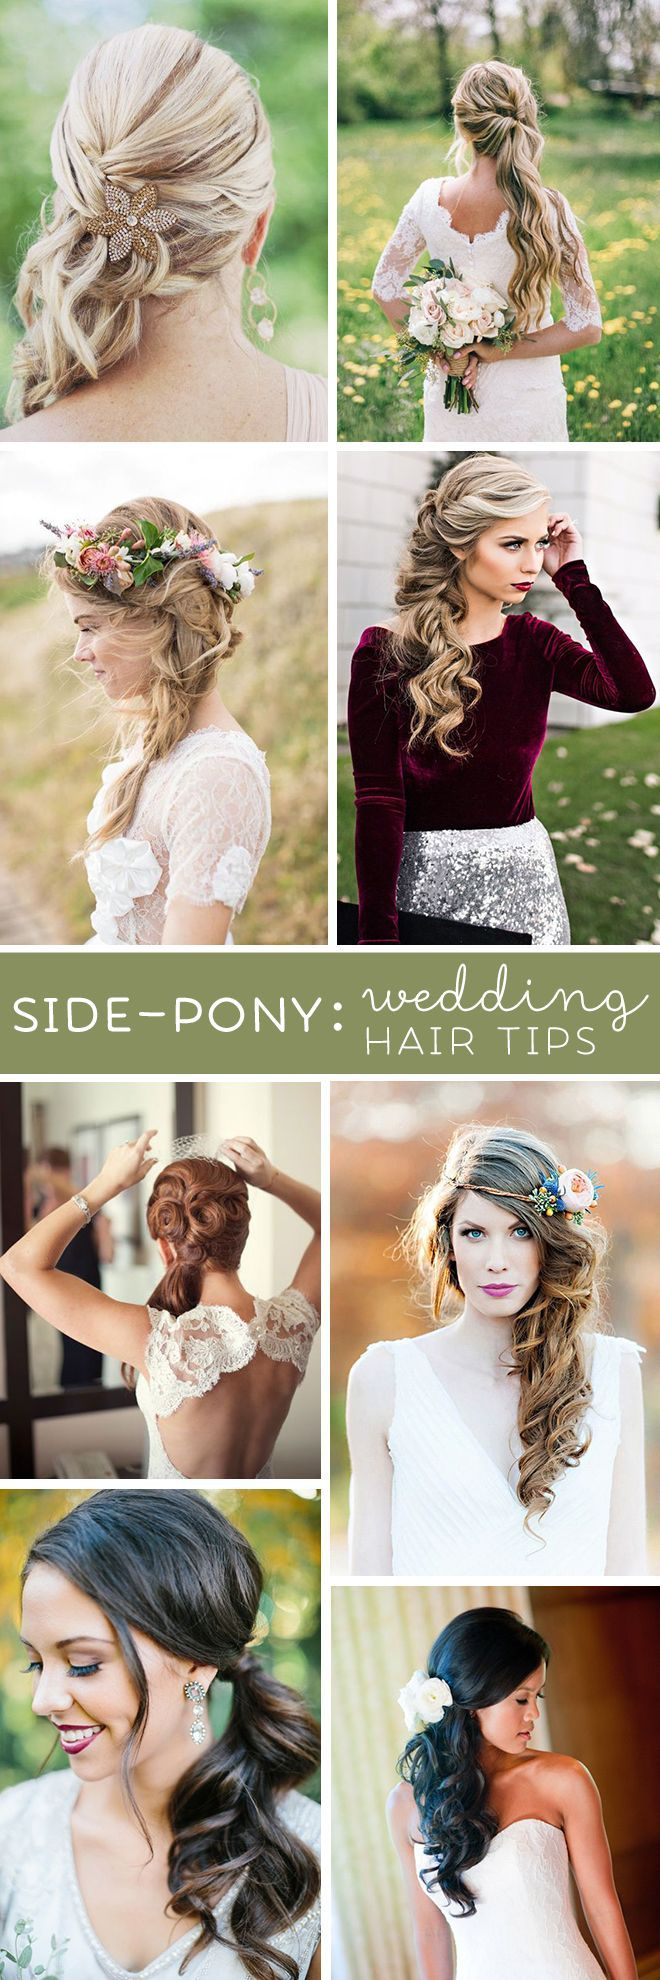 15 best ponytail wedding hairstyle photos